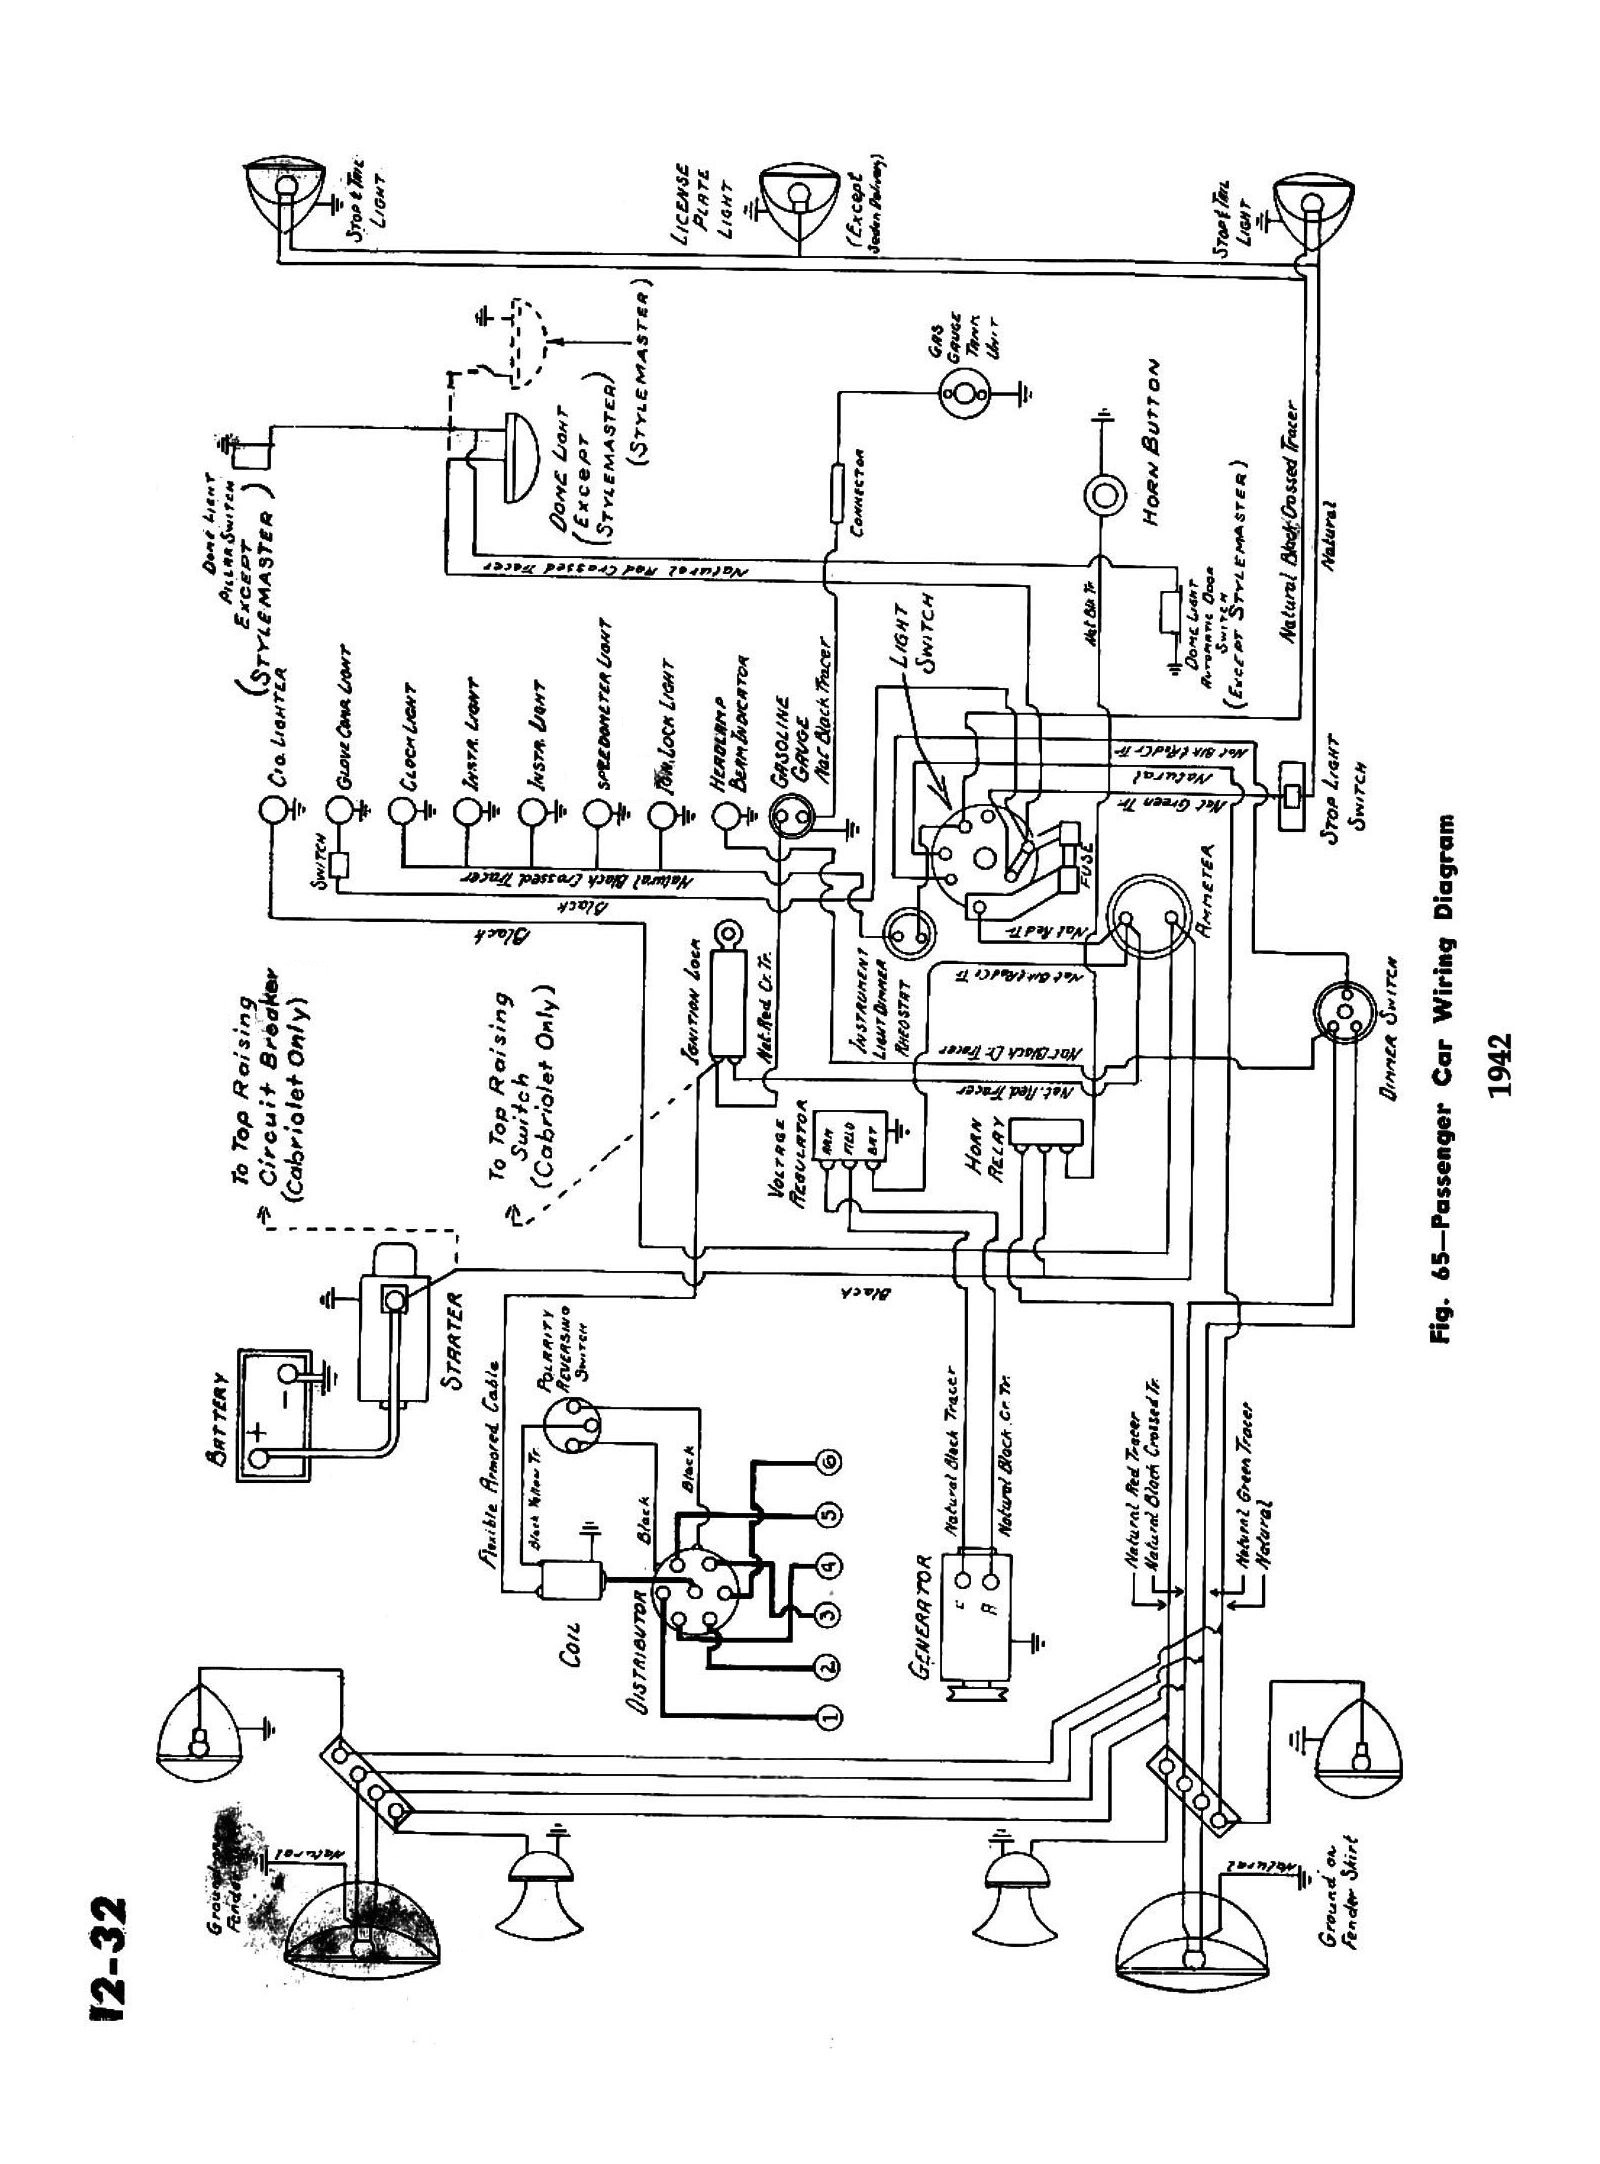 1942 chevy truck starter wiring diagram  1942  free engine